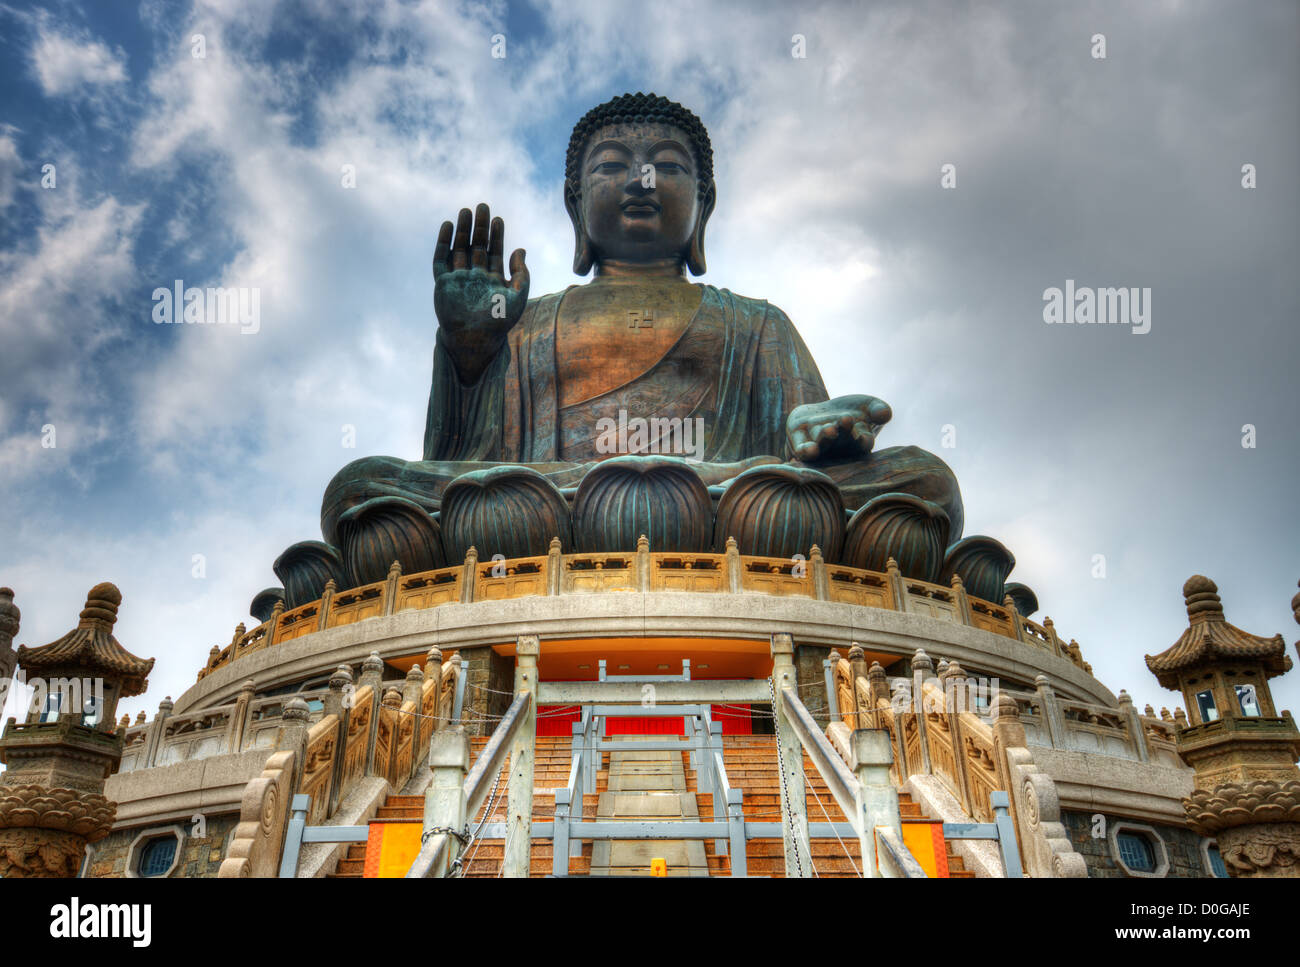 Tian Tan Buddha (Great Buddha) is a 34 meter Buddha statue located on Lantau Island in Hong Kong. - Stock Image